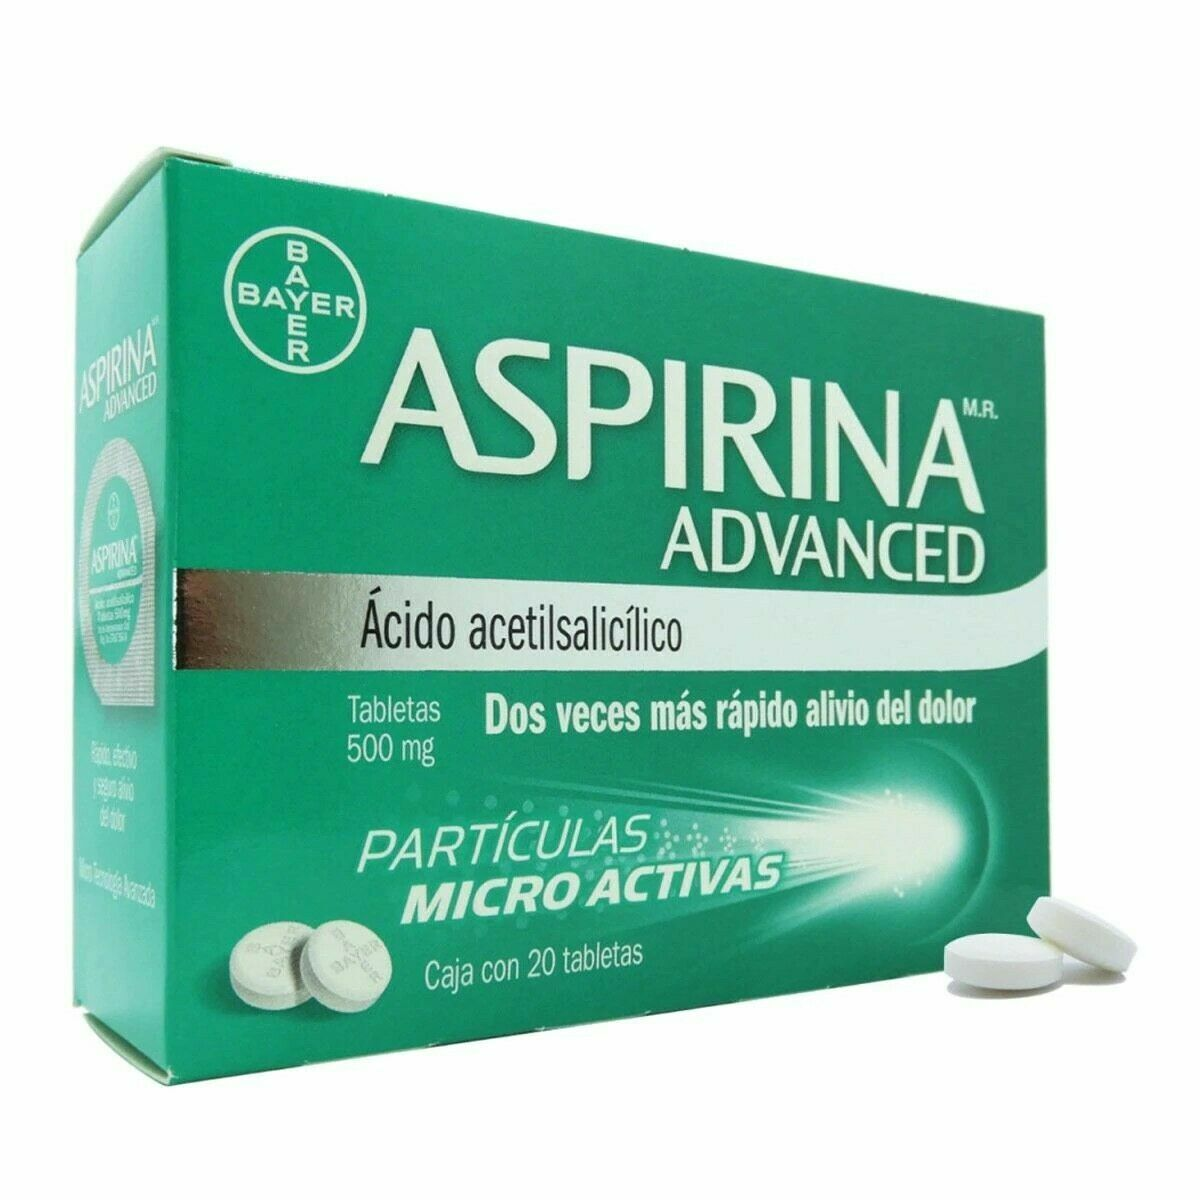 Aspirina / Aspirin Advanced 500 mg -20 tablets